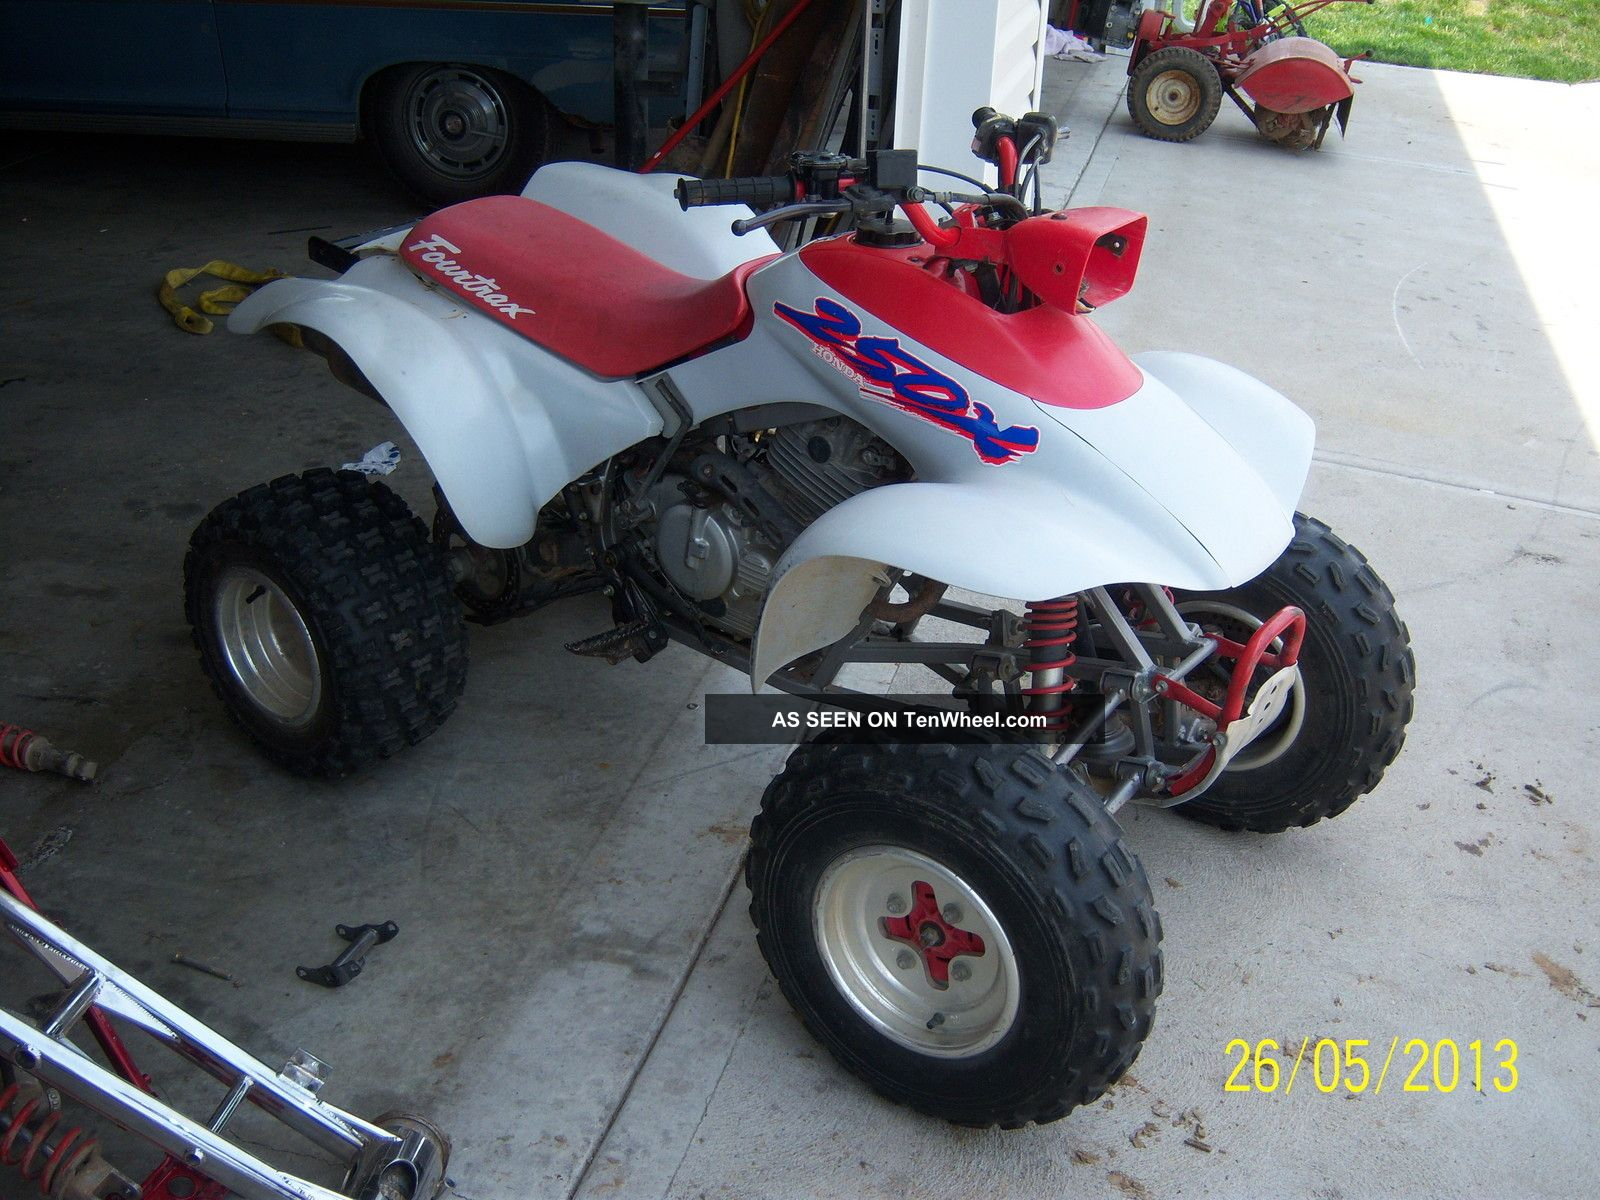 honda recon wiring diagram with 1987 Trx250 Wiring Diagram on 1987 Trx250 Wiring Diagram furthermore Honda Atv Motor Diagram Guide as well Honda Wave 110 Wiring Diagram together with Cute Squirrels 30 likewise 496307 Heater Hose Routing Aftermarket.